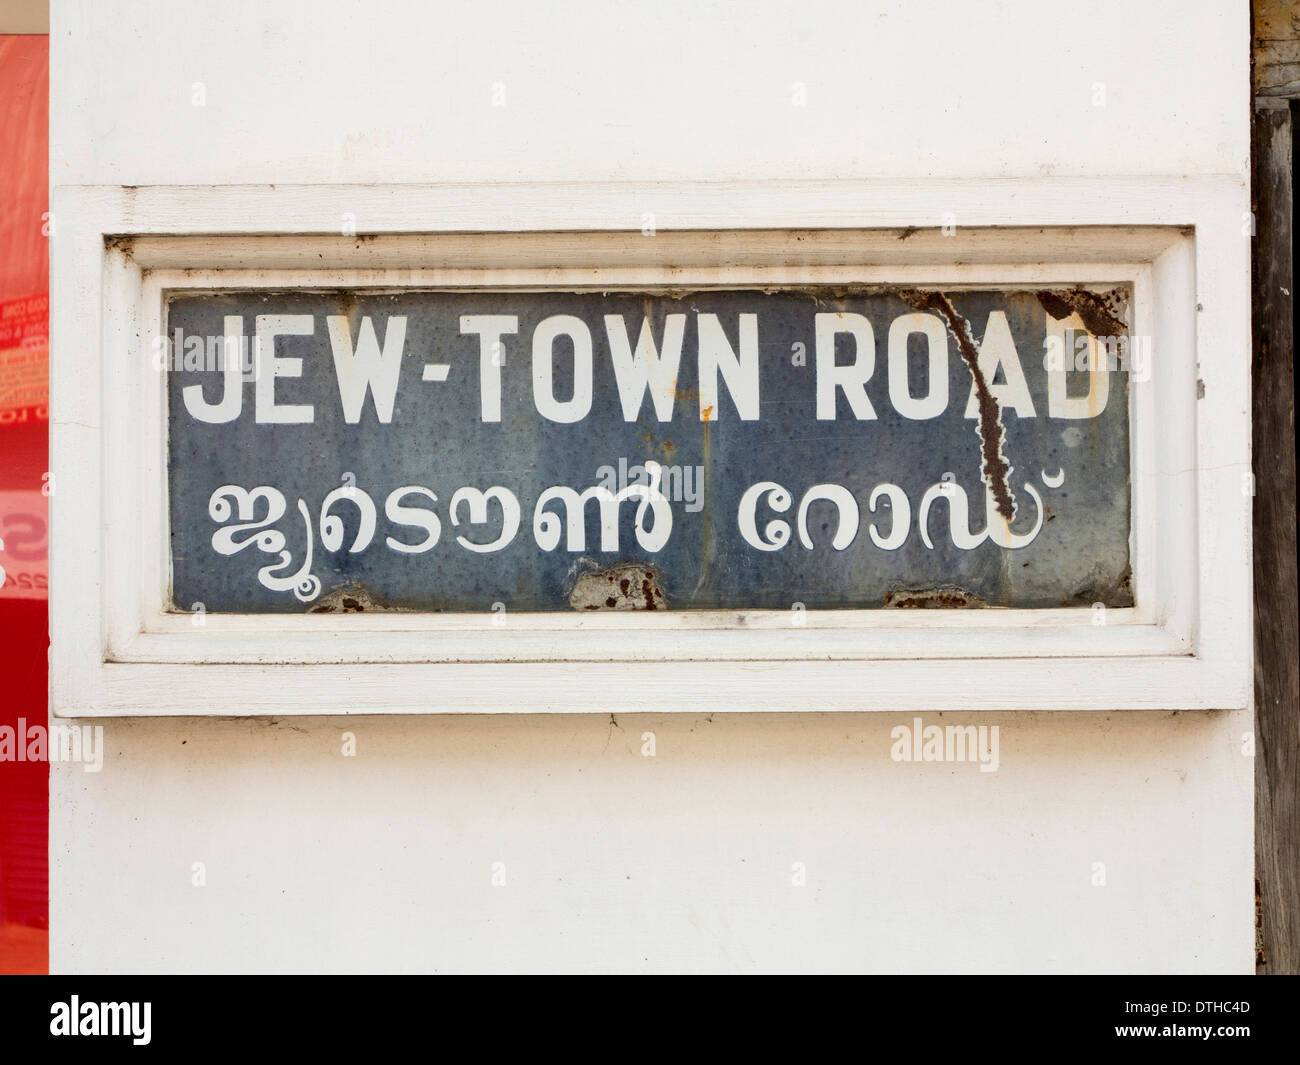 India, Kerala, Fort Cochin, Mattancherry, Jew-town, road sign in English and Malayallam - Stock Image